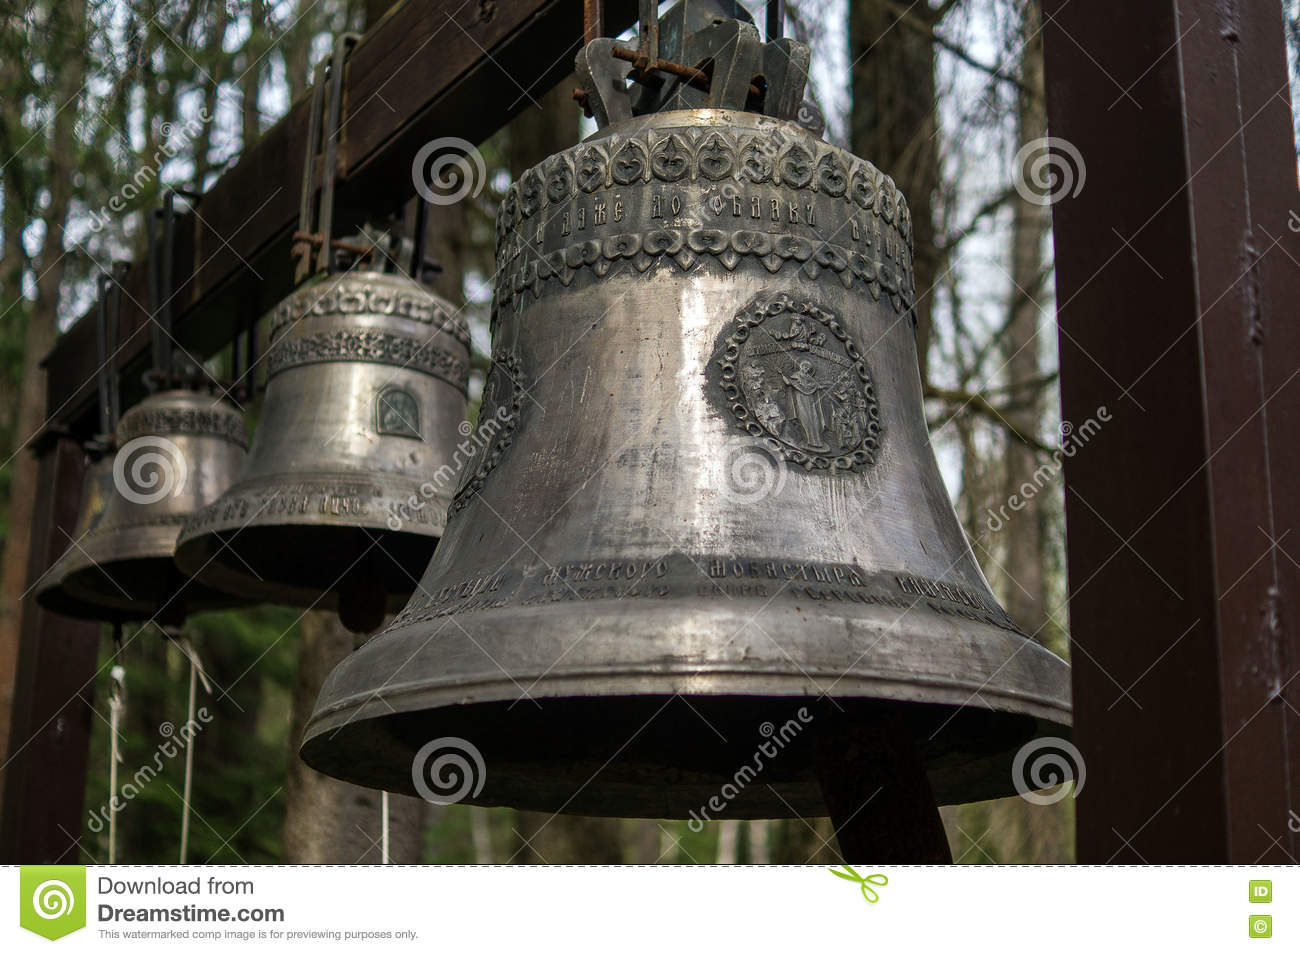 Cloches orthodoxes